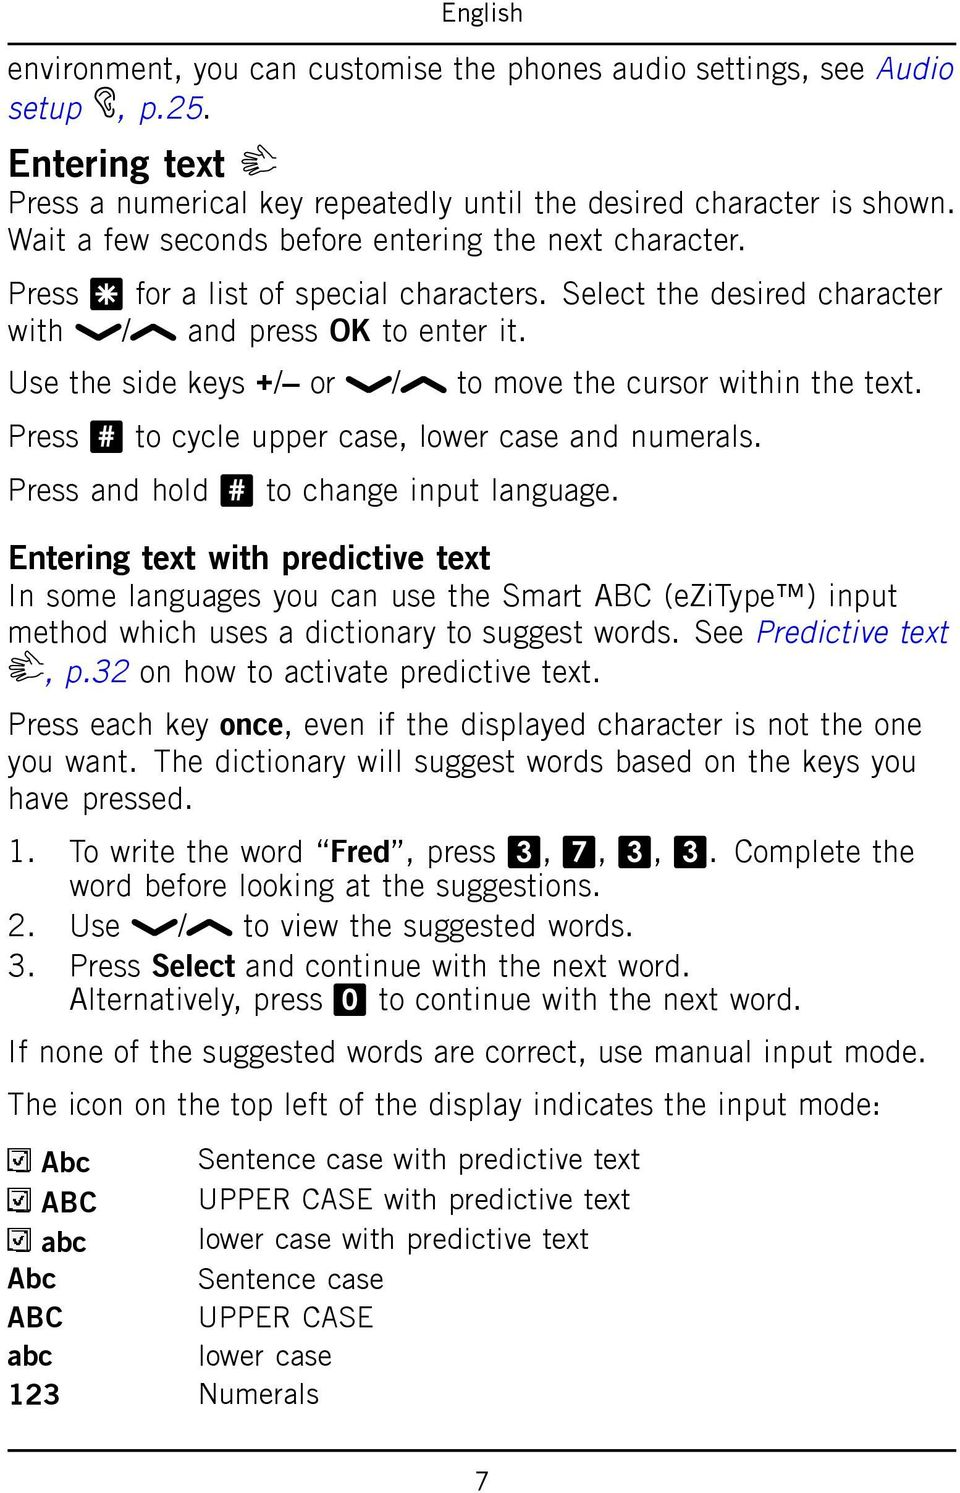 Use the side keys +/ or / to move the cursor within the text. Press # to cycle upper case, lower case and numerals. Press and hold # to change input language.